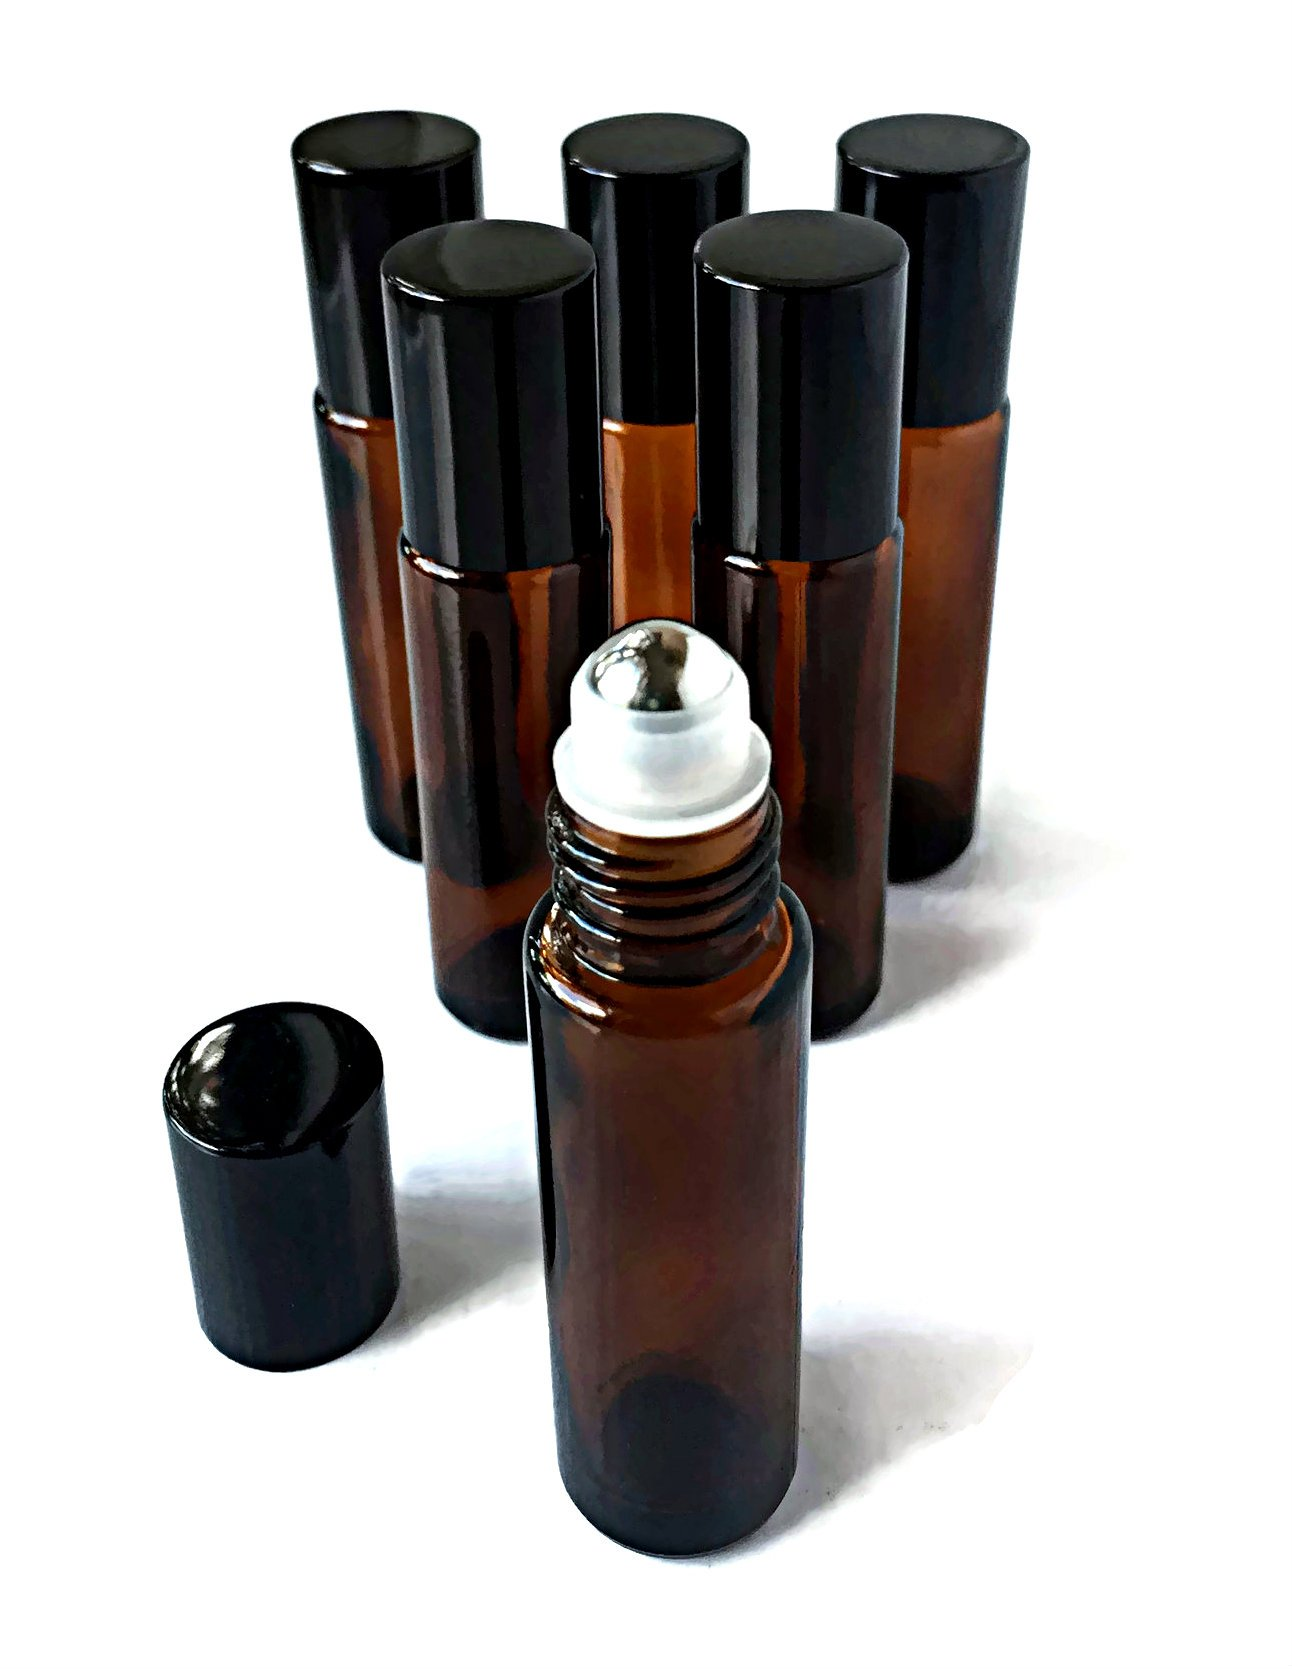 Roller Bottles for Essential Oils by Oils For Everything, Glass 10ml Amber Bottle with Steel Roller Ball and Black Cap - 6 pack